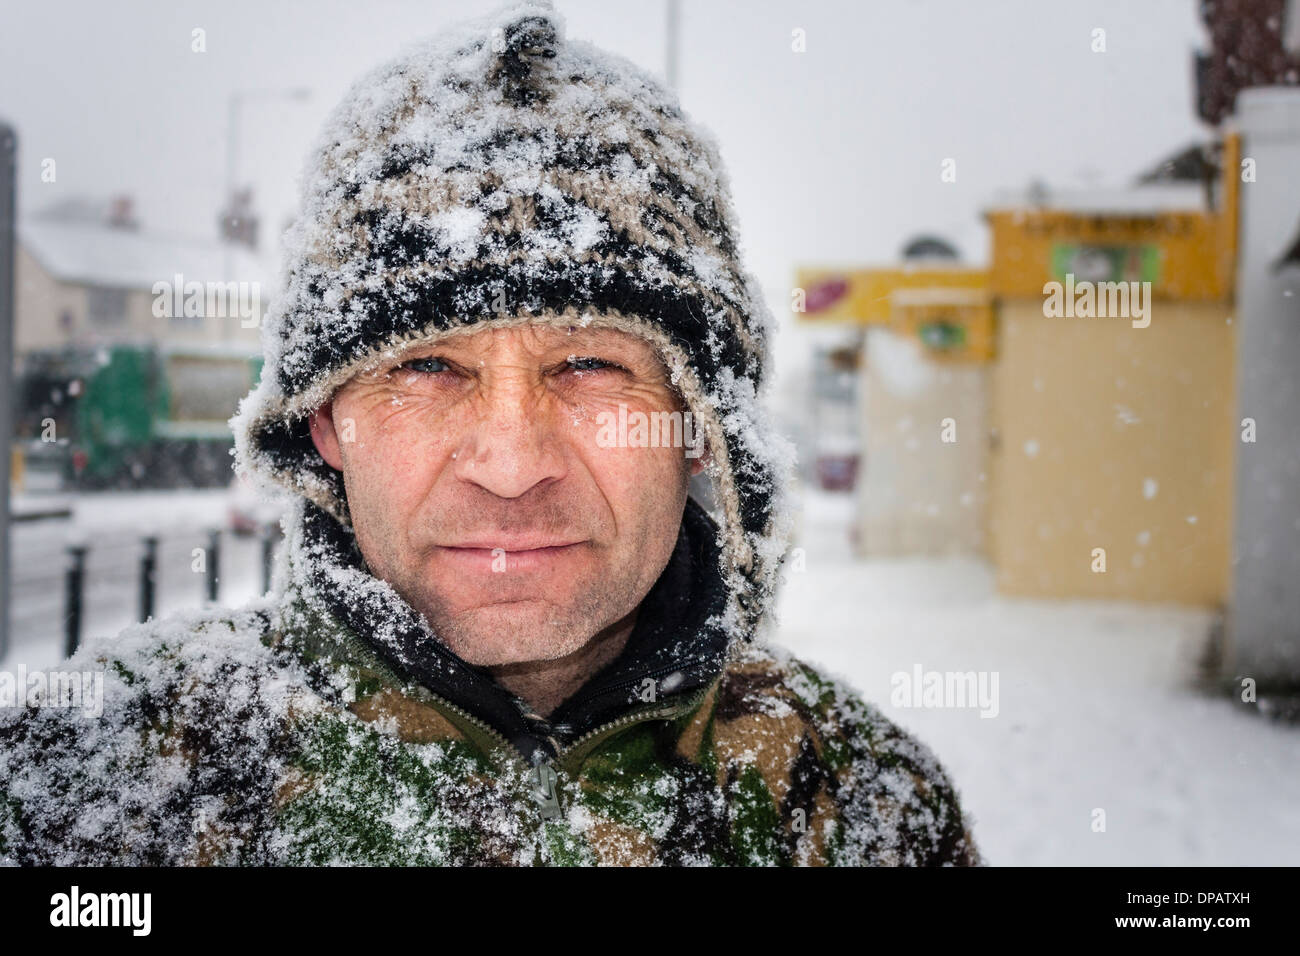 Portrait of man outside in winter snowstorm. Stock Photo